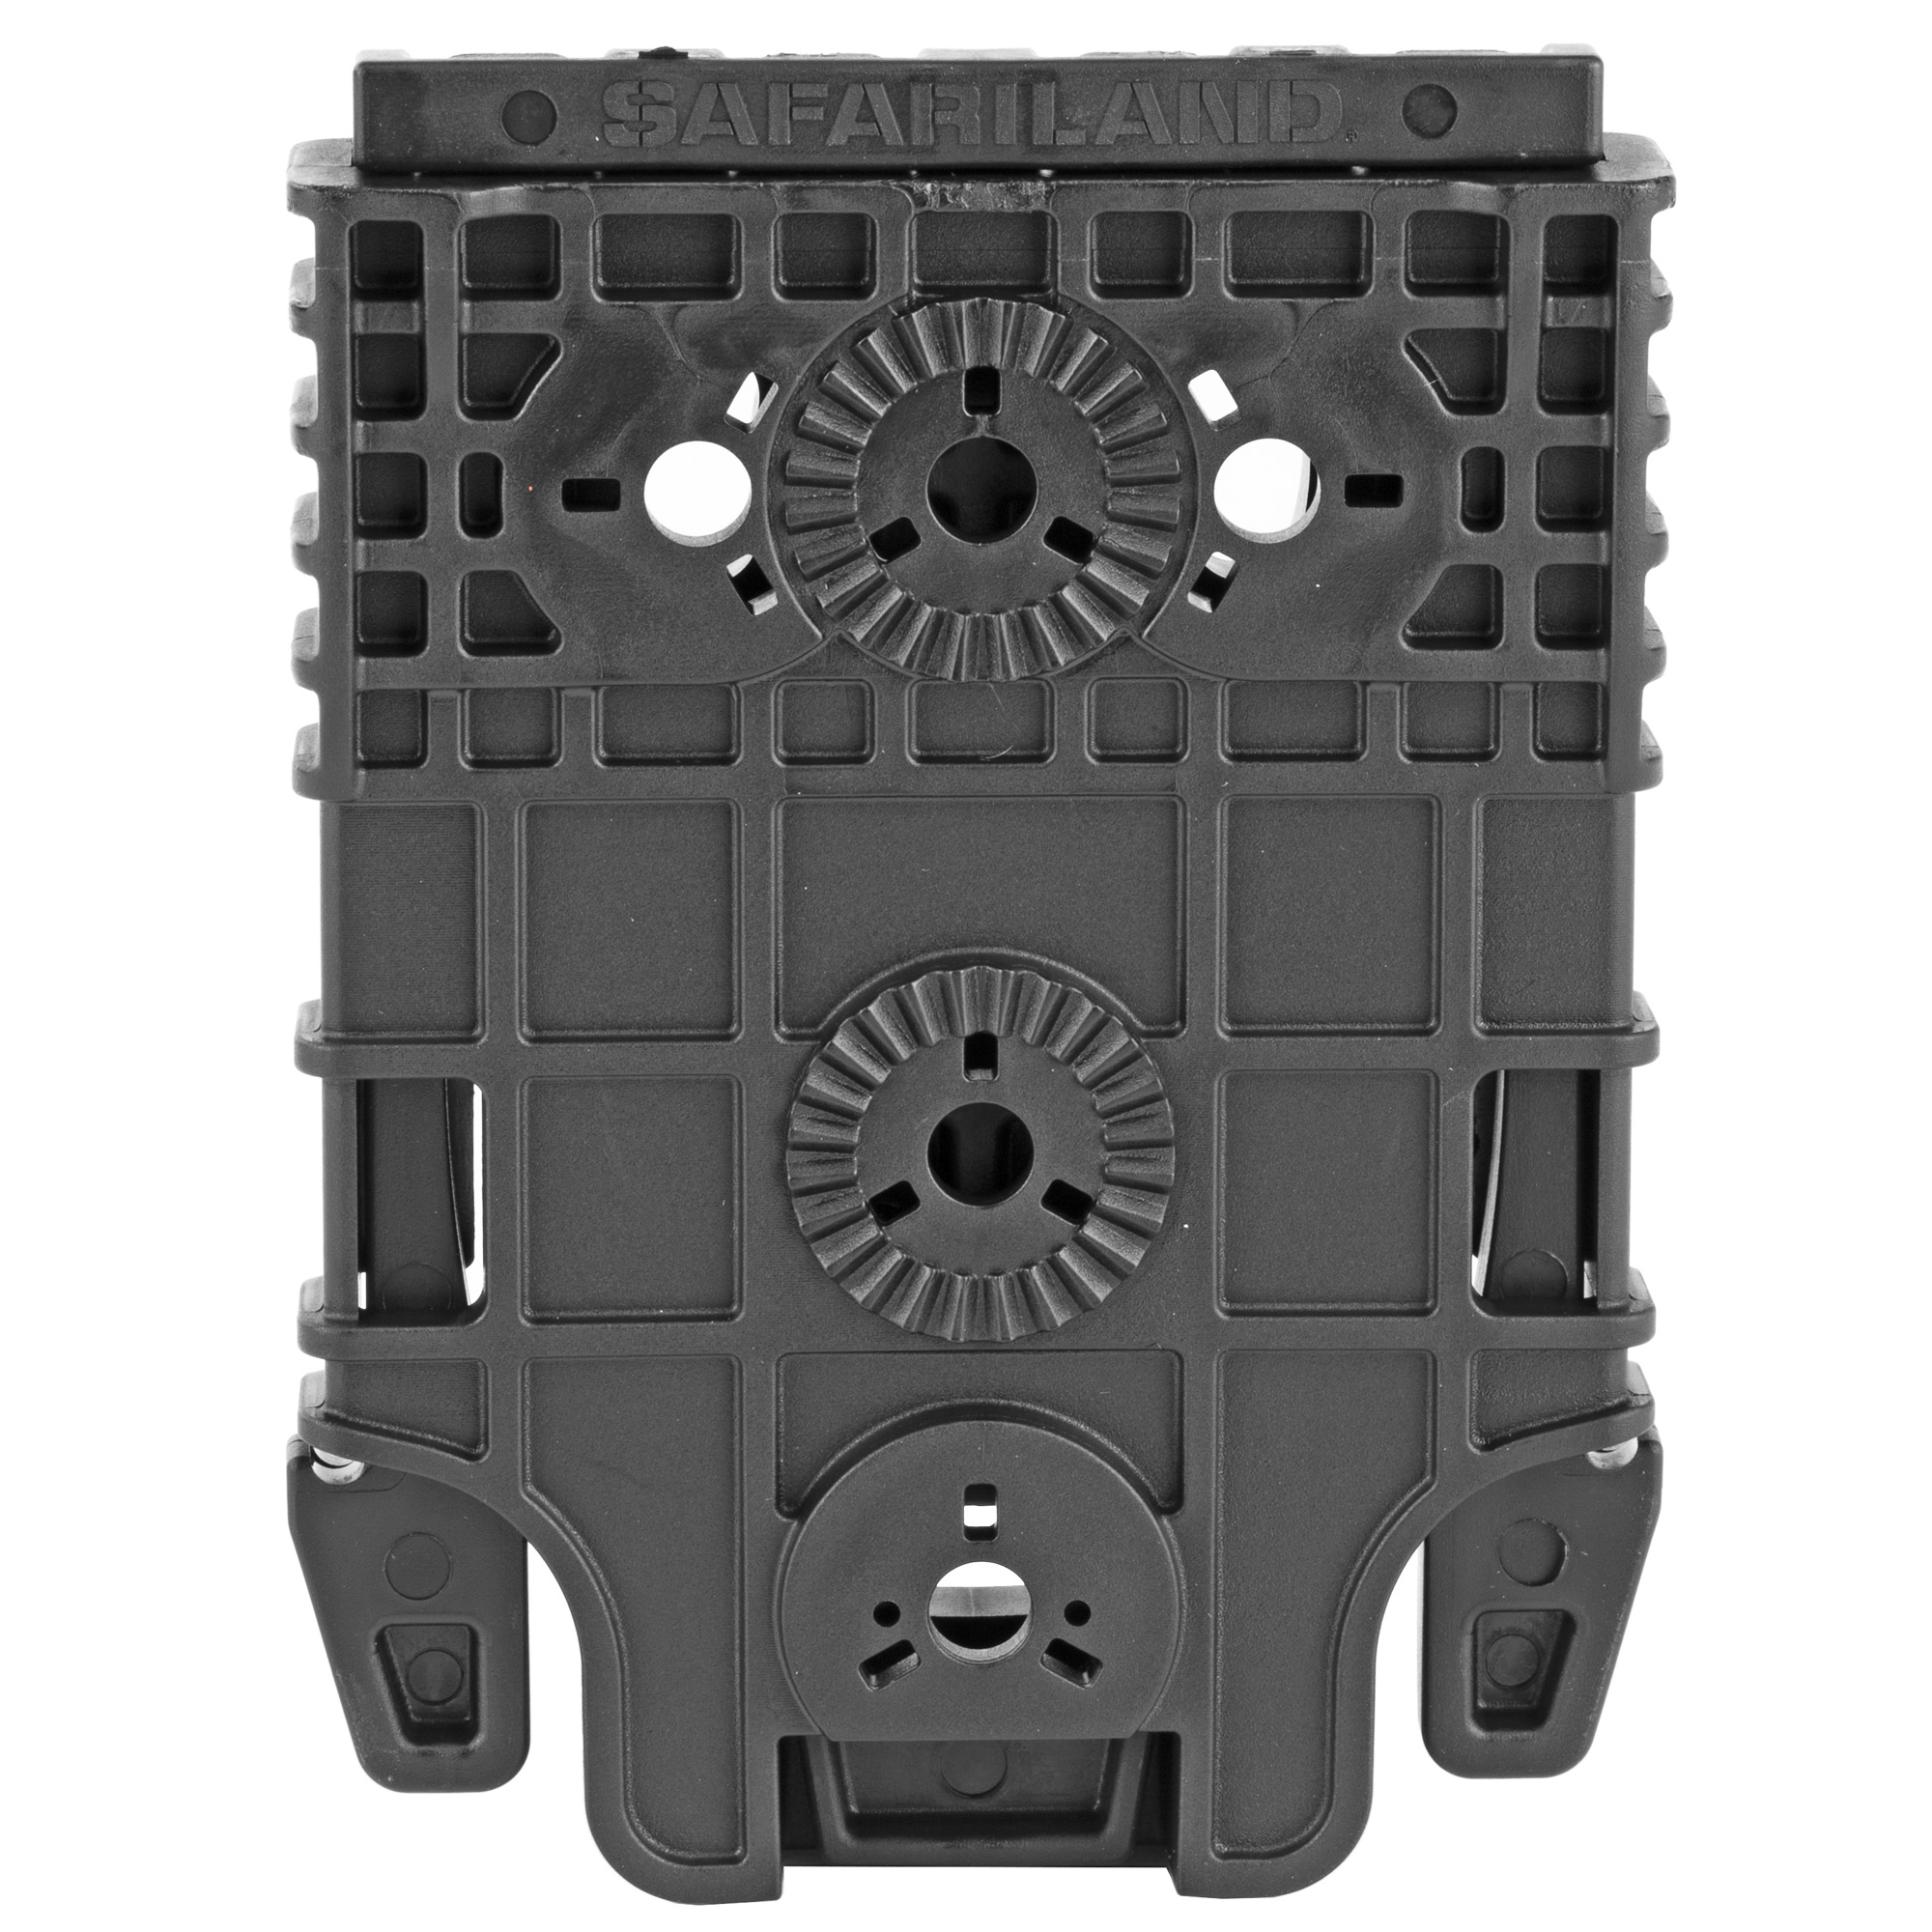 """The QUICK-KIT includes the QLS 19 Locking Fork and QLS 22 or QLS 22L (Extra Locking Feature) Receiver Plate components. Constructed of injection molded nylon"""" the receiver plate can be attached at different angles according to user preference. The QLS (Quick Locking System) allows for quick transfer of gear between attachment points such as a belt loop"""" tactical leg shroud or other stable platform. The QLS fork and plate combination passes the Level I Retention(TM) pull test. Allows users to rearrange gear quickly and easily without the use of tools. Hardware and Allen wrench included."""